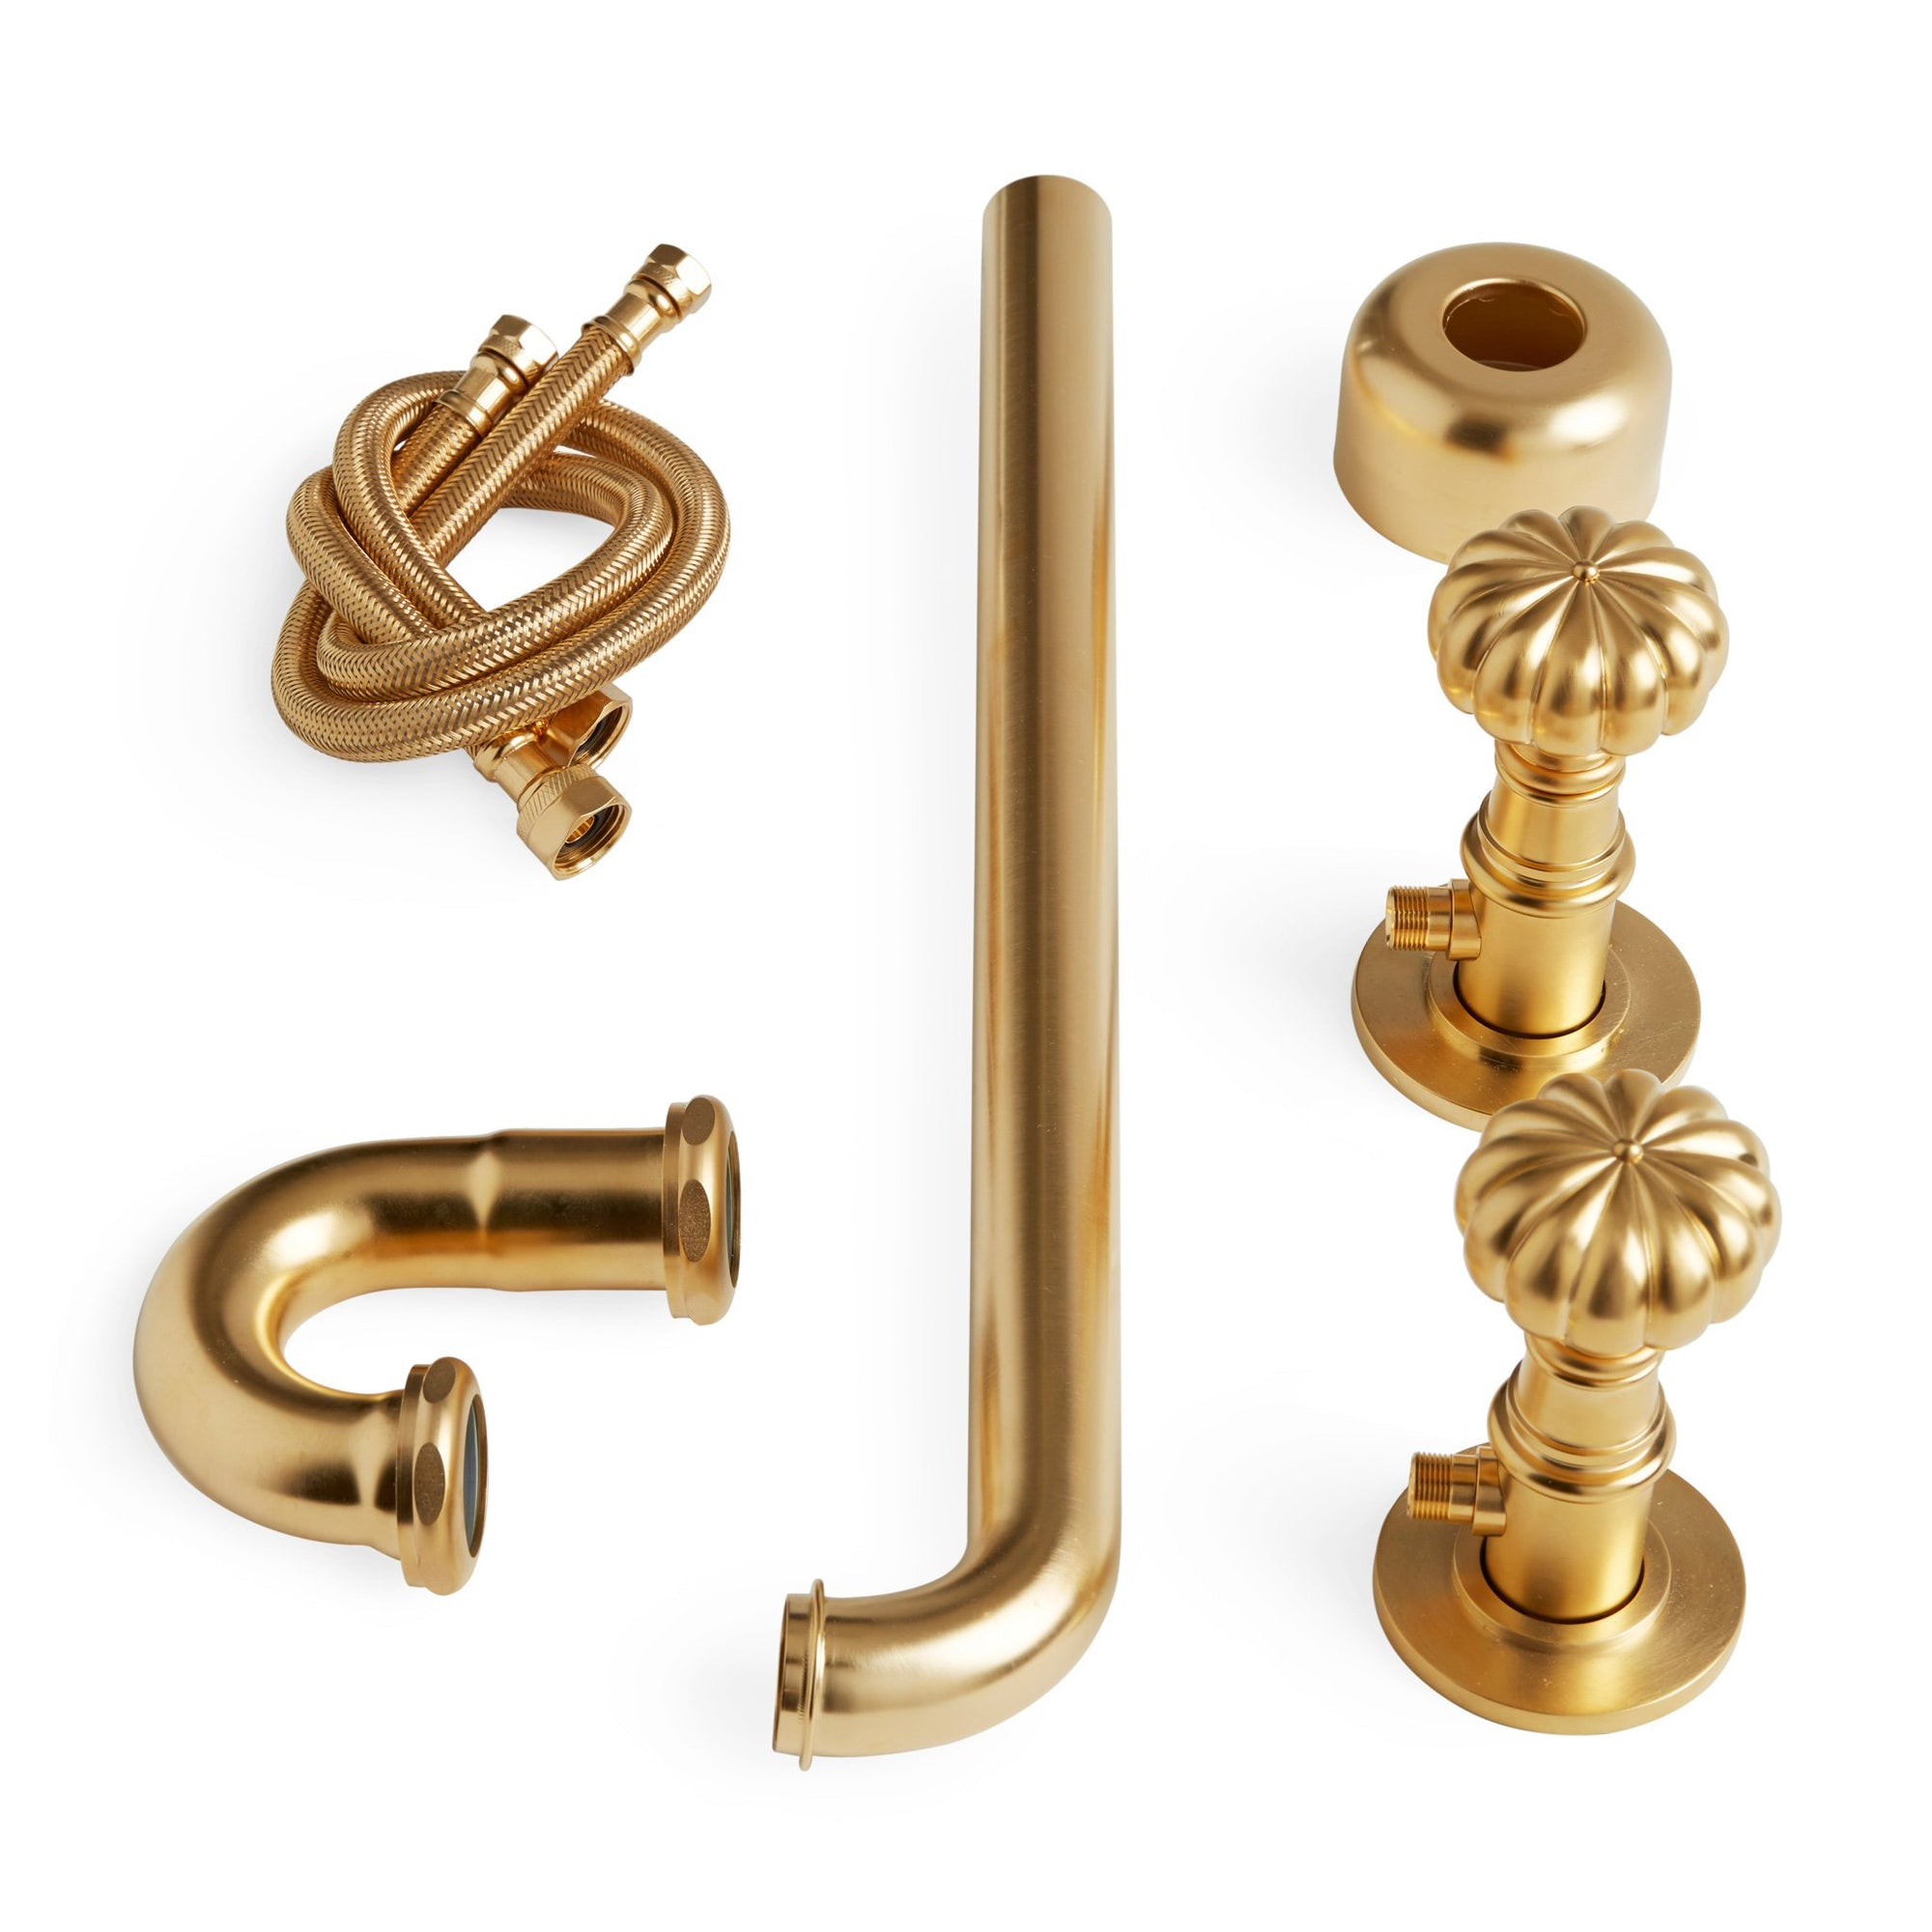 2951-EXT-0910-GP Sherle Wagner International Pair of Melon Knob Shut off Valves with Extended P-Trap in Gold Plate metal finish